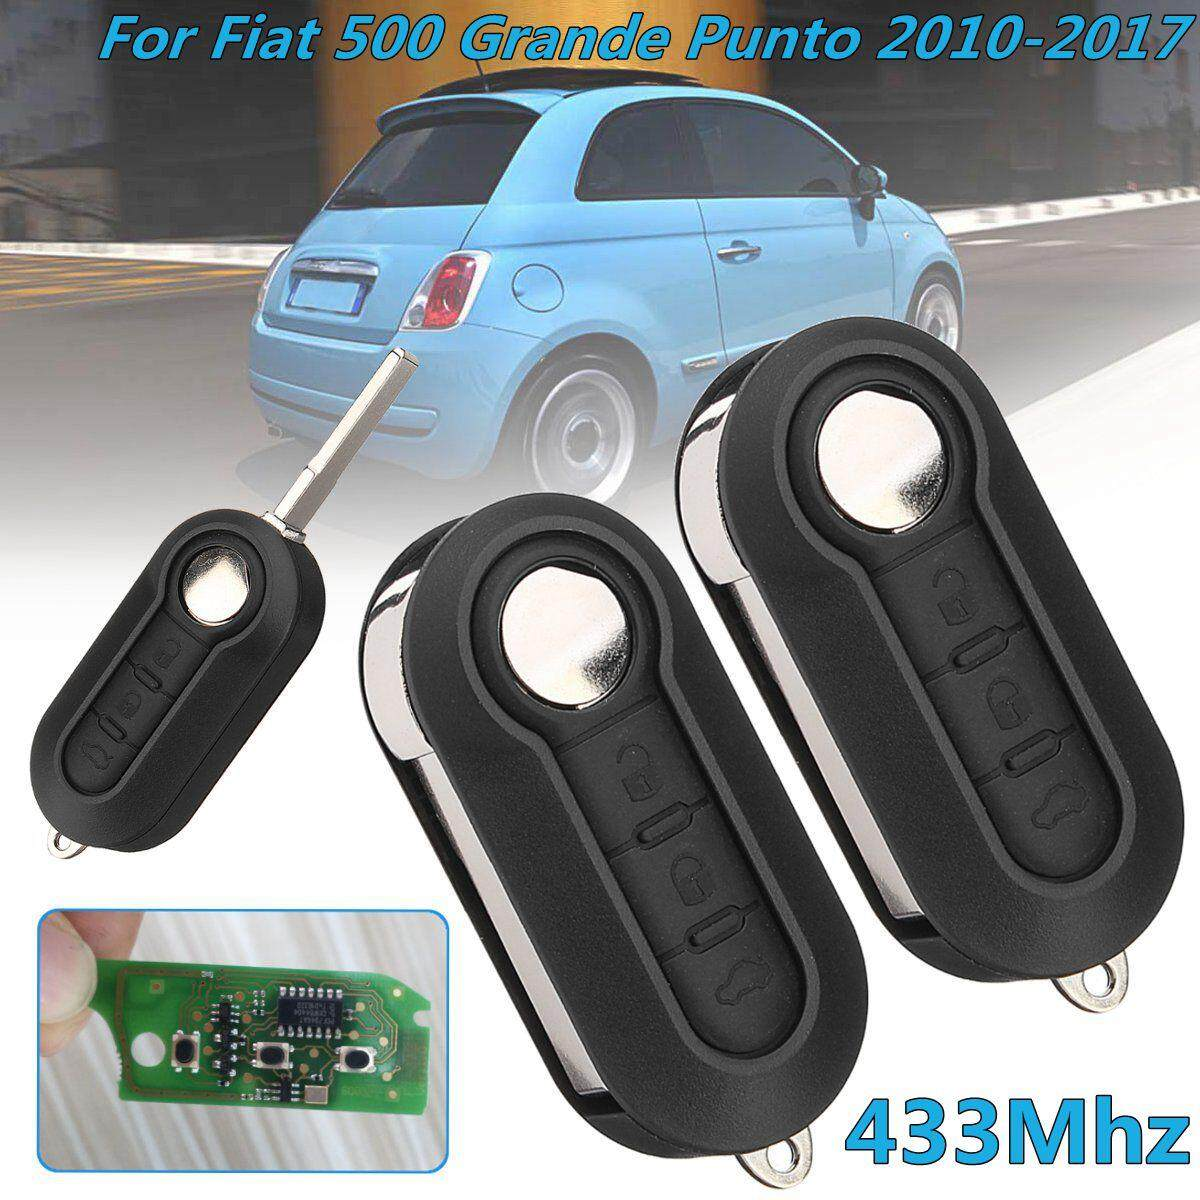 2Pcs 3 Button 433Mhz PCF7946 Chip Remote Key For Fiat 500 Grande Punto 2010-2017